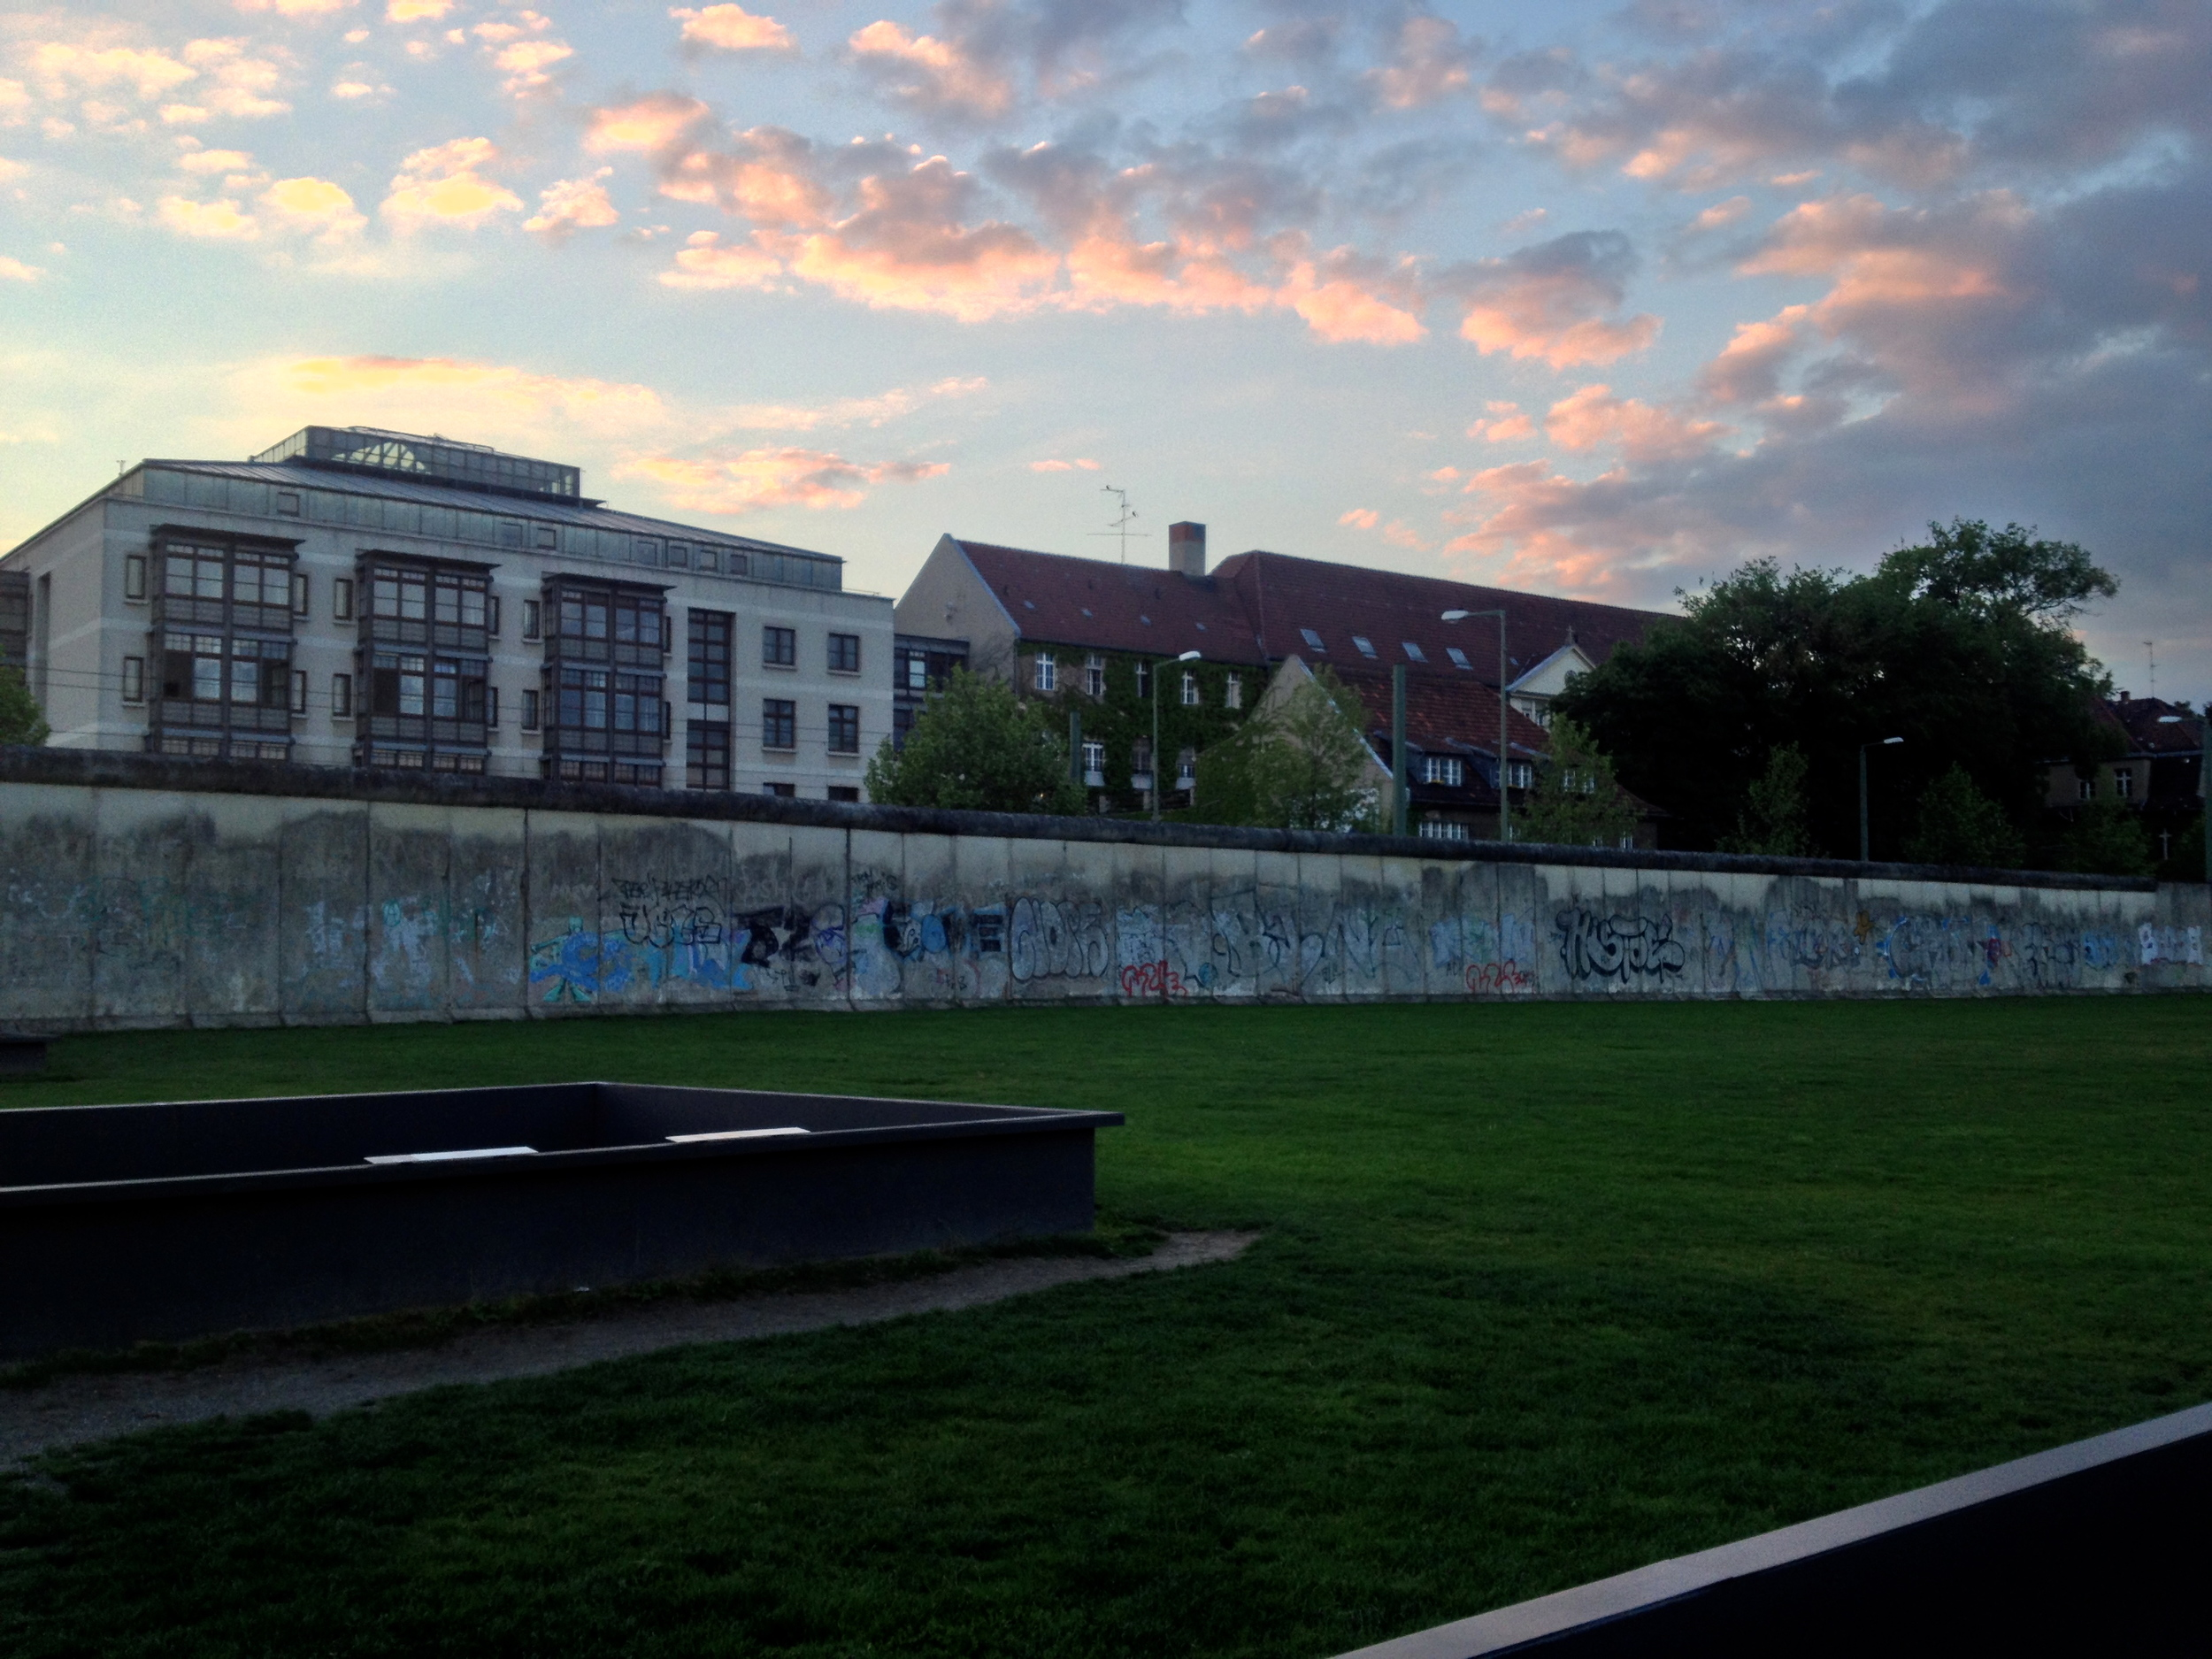 Sunset over the Berlin Wall memorial